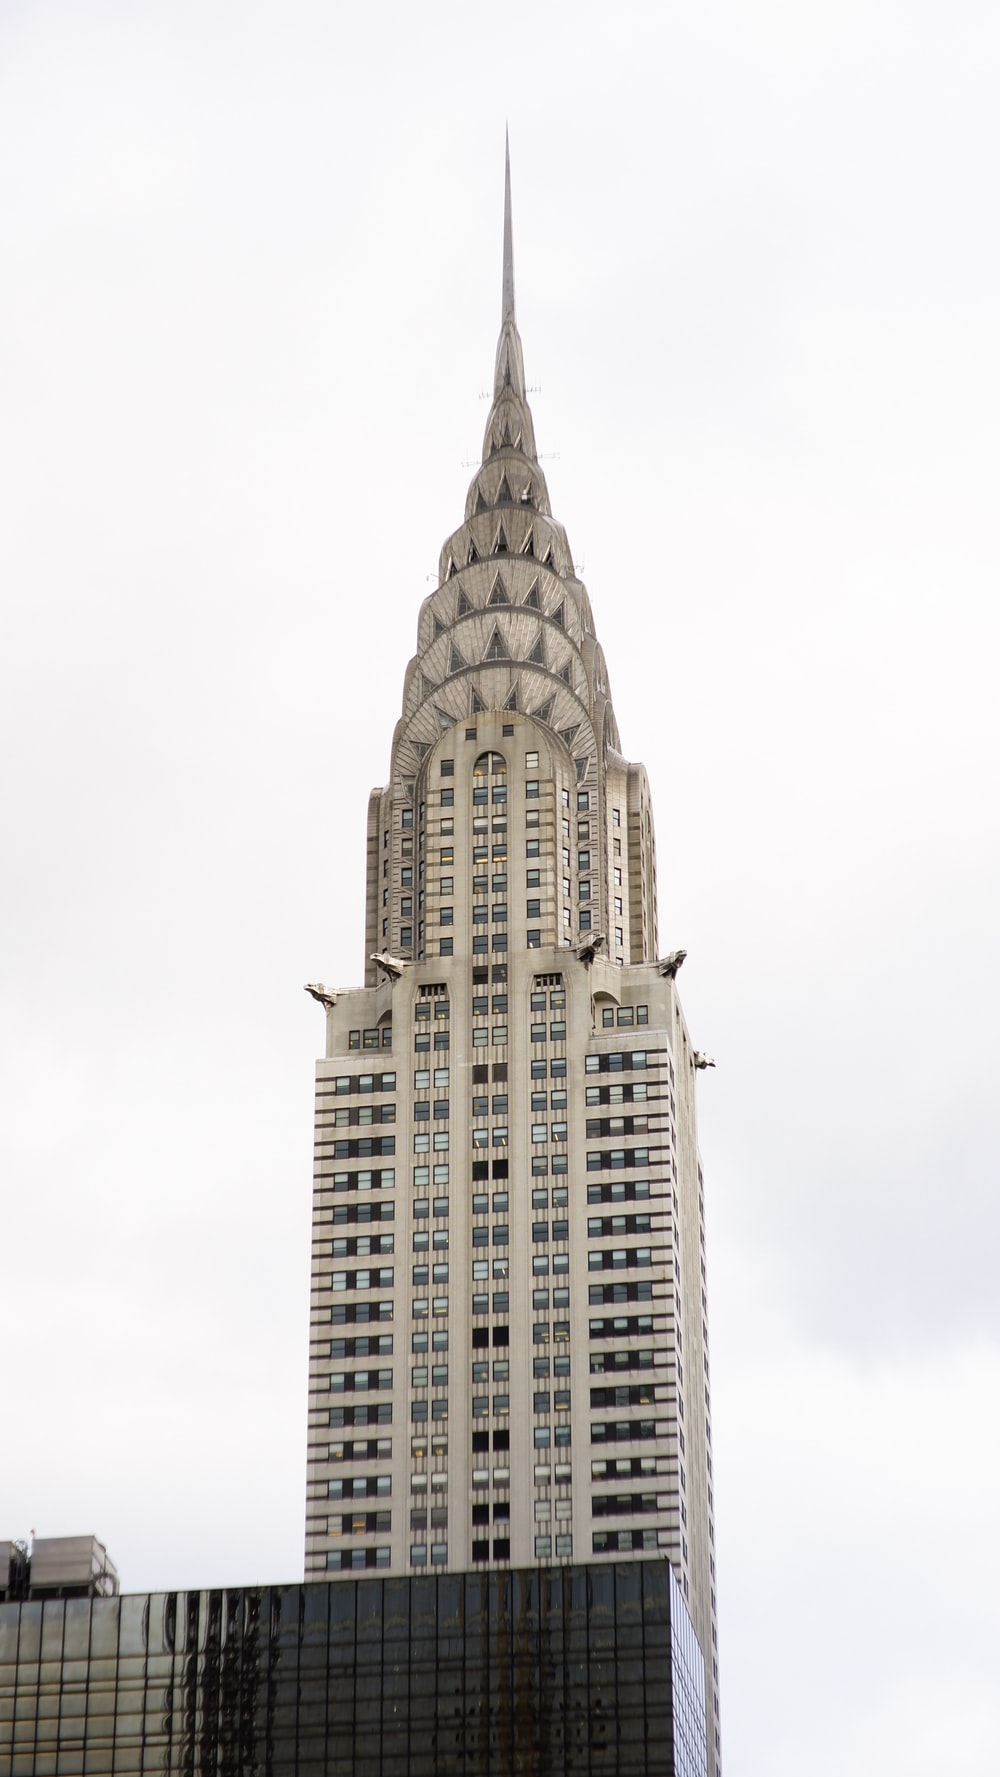 low-angle photography of white concrete building tower